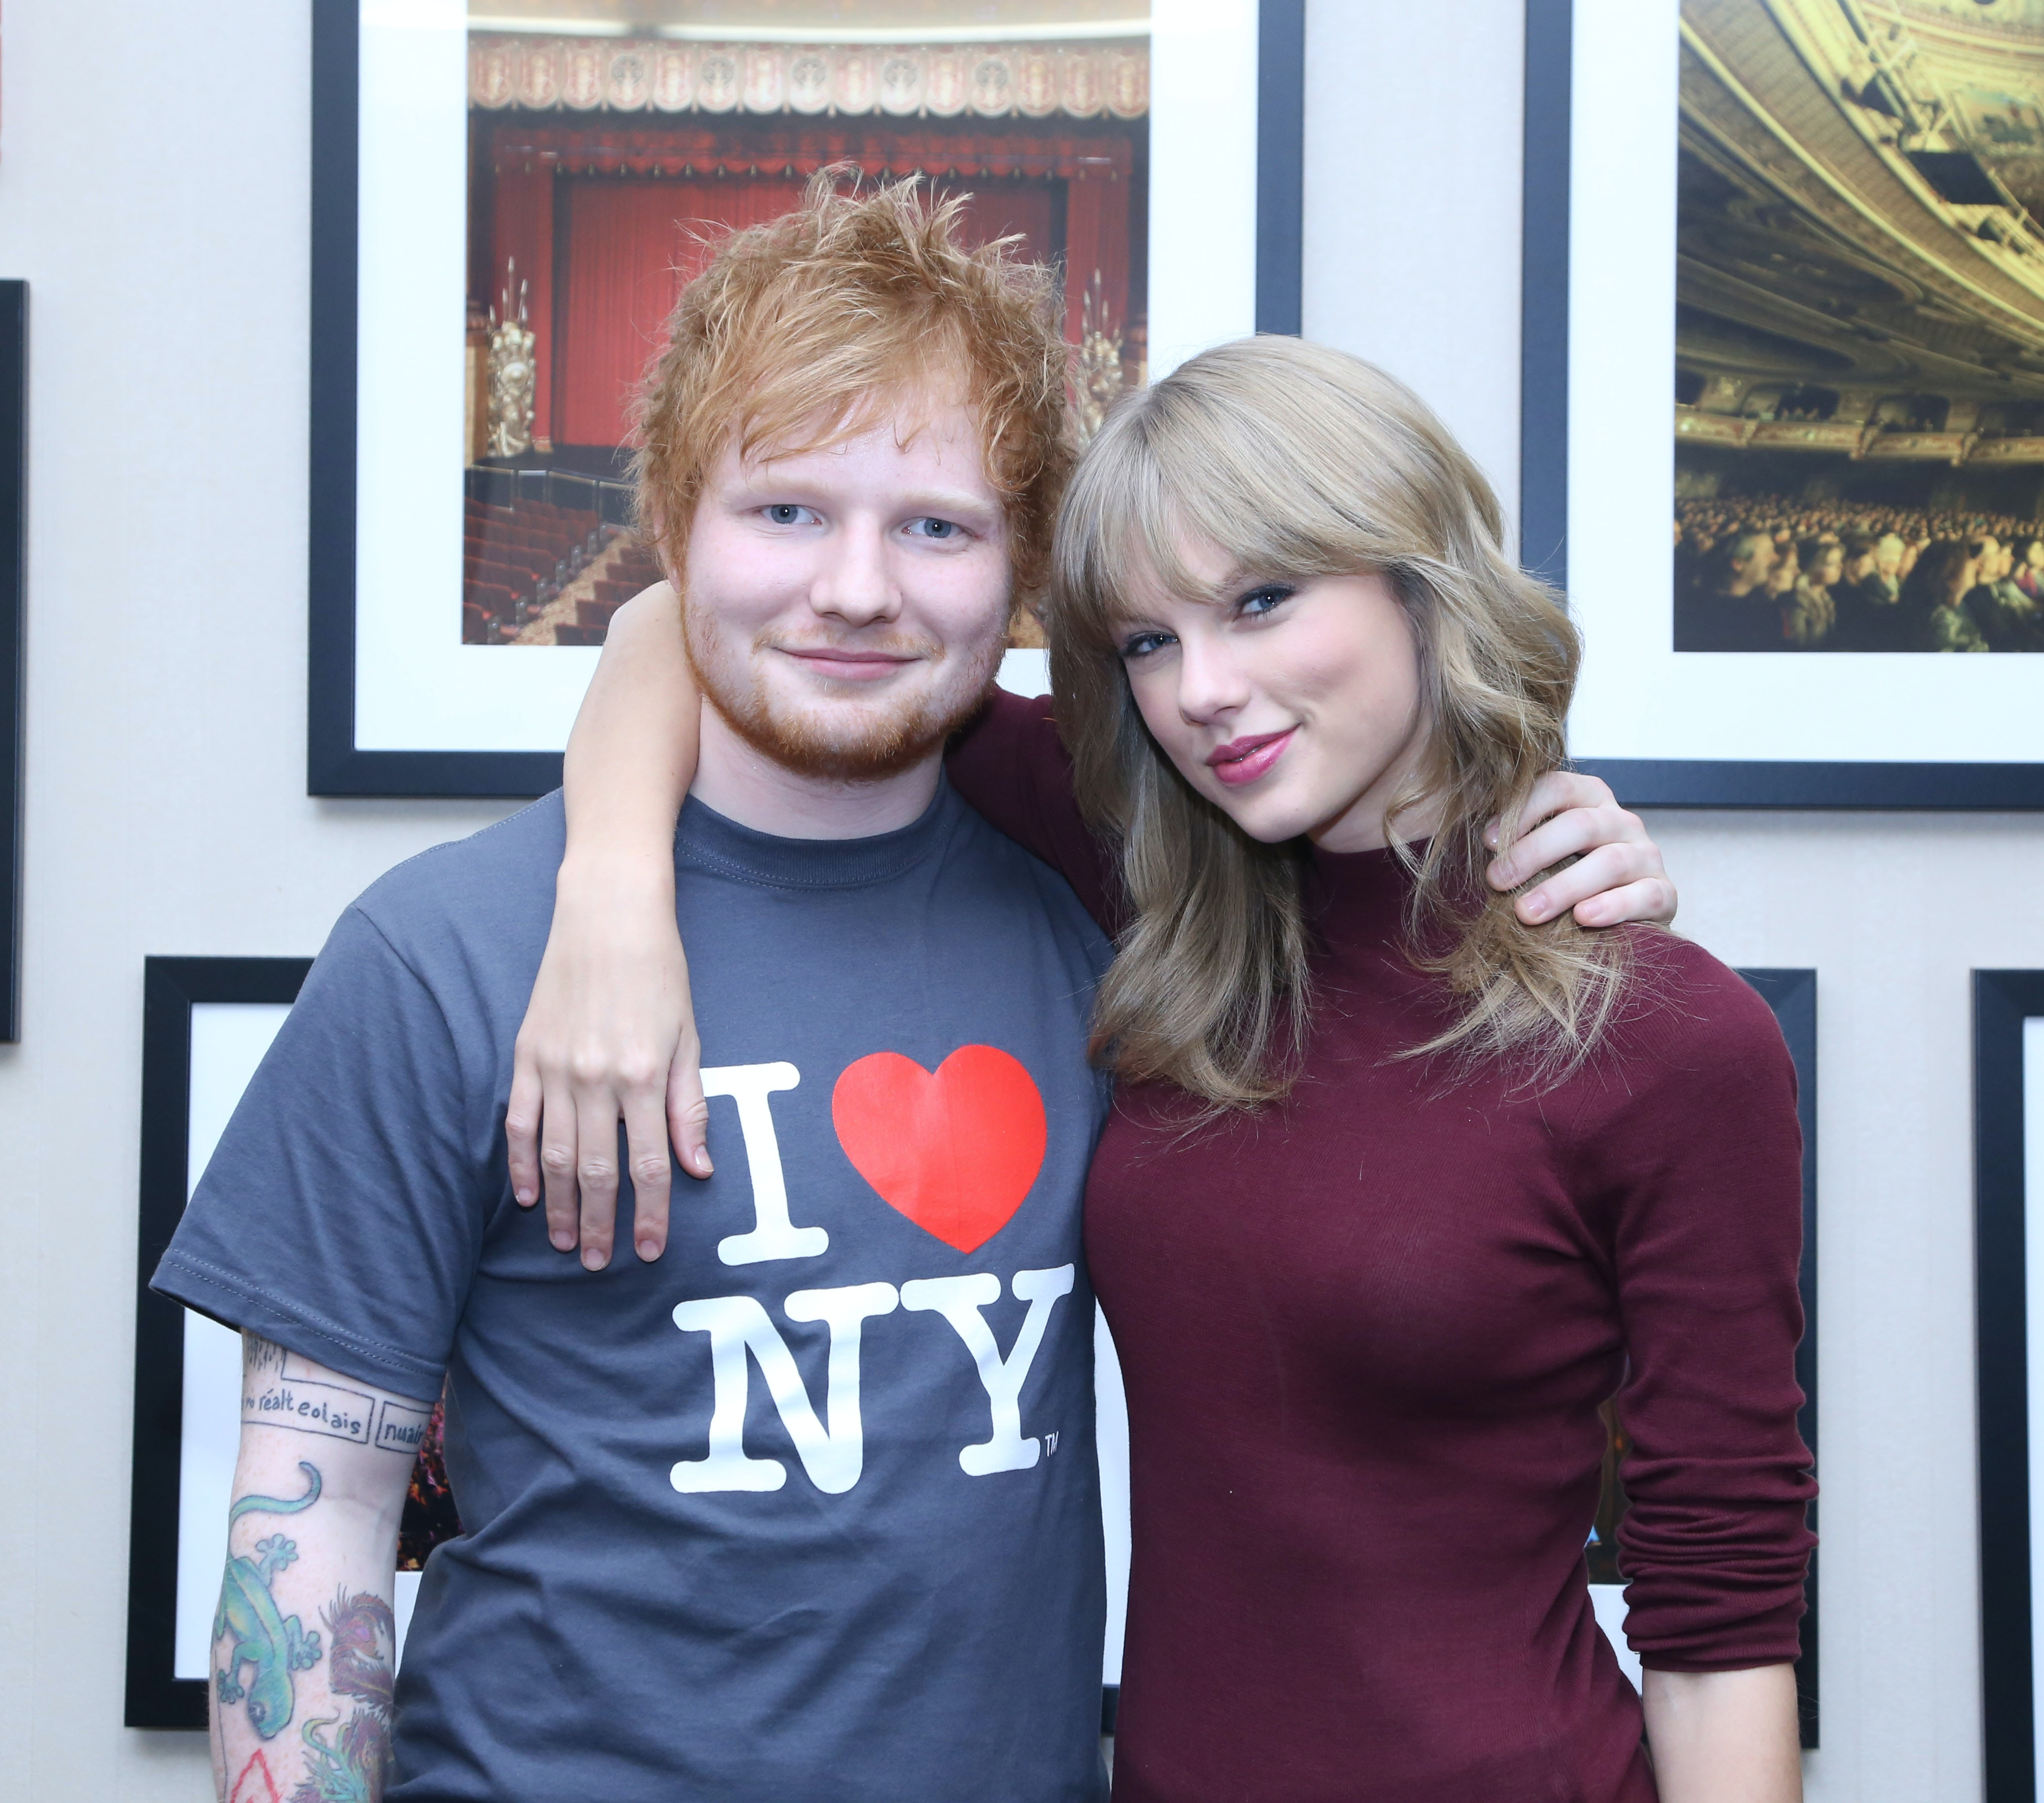 Are ed sheeran and taylor swift dating